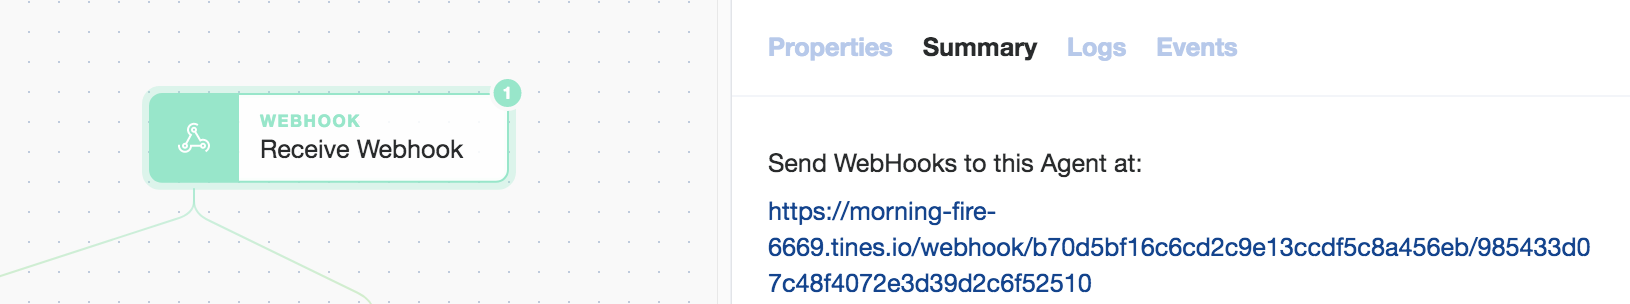 Tines: Empty Webhook agent for receiving, you guessed it, webhooks!